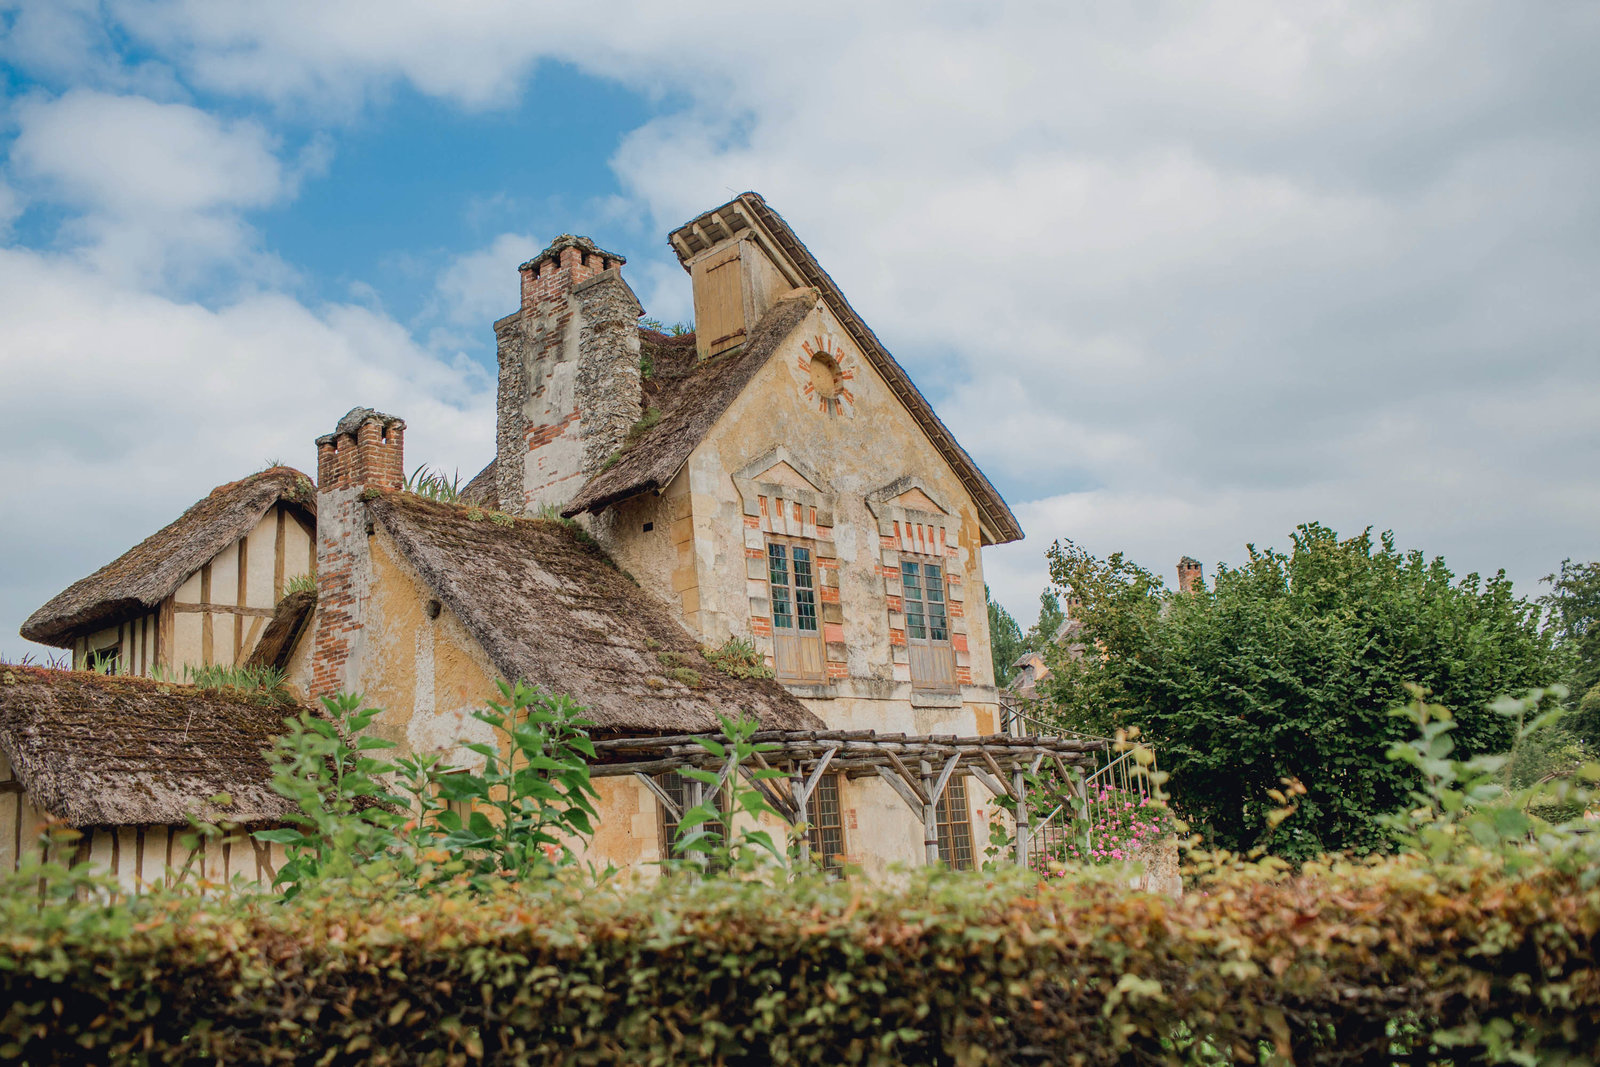 mill-marie-antoinette-hamlet-versailles-france-travel-destination-kate-timbers-photography-1718